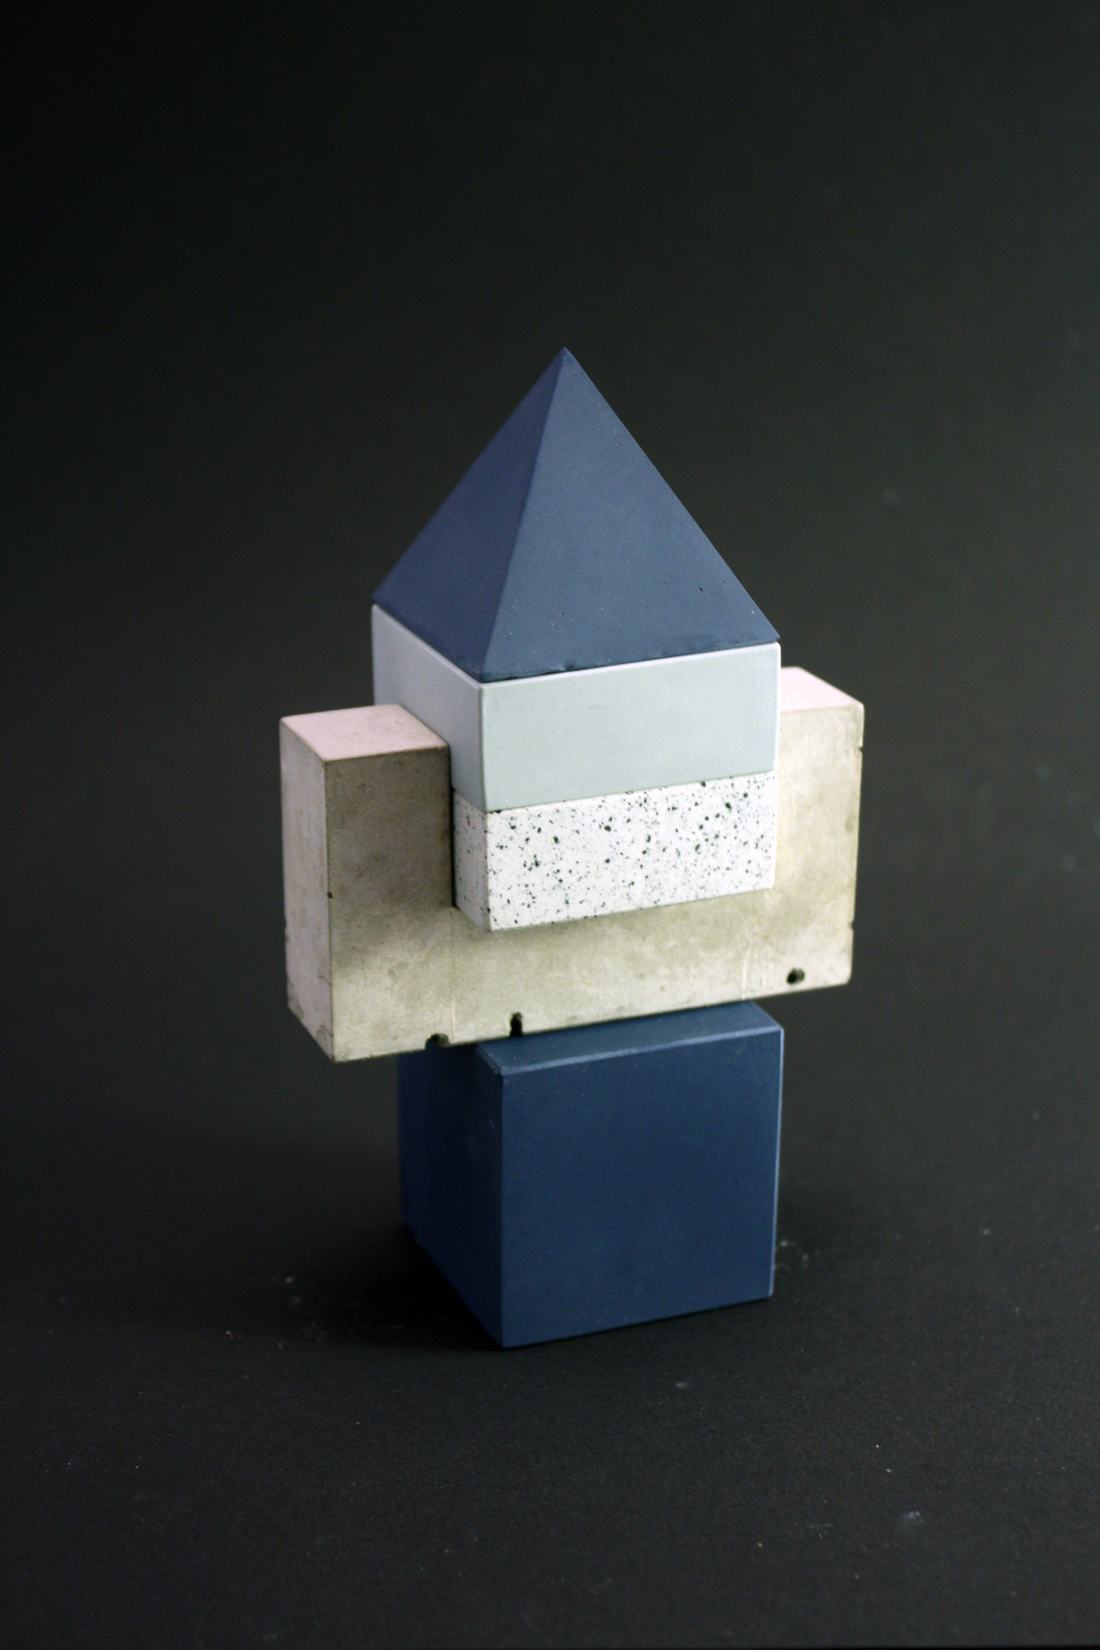 BLOG POST Pyramid by Bethany Stafford